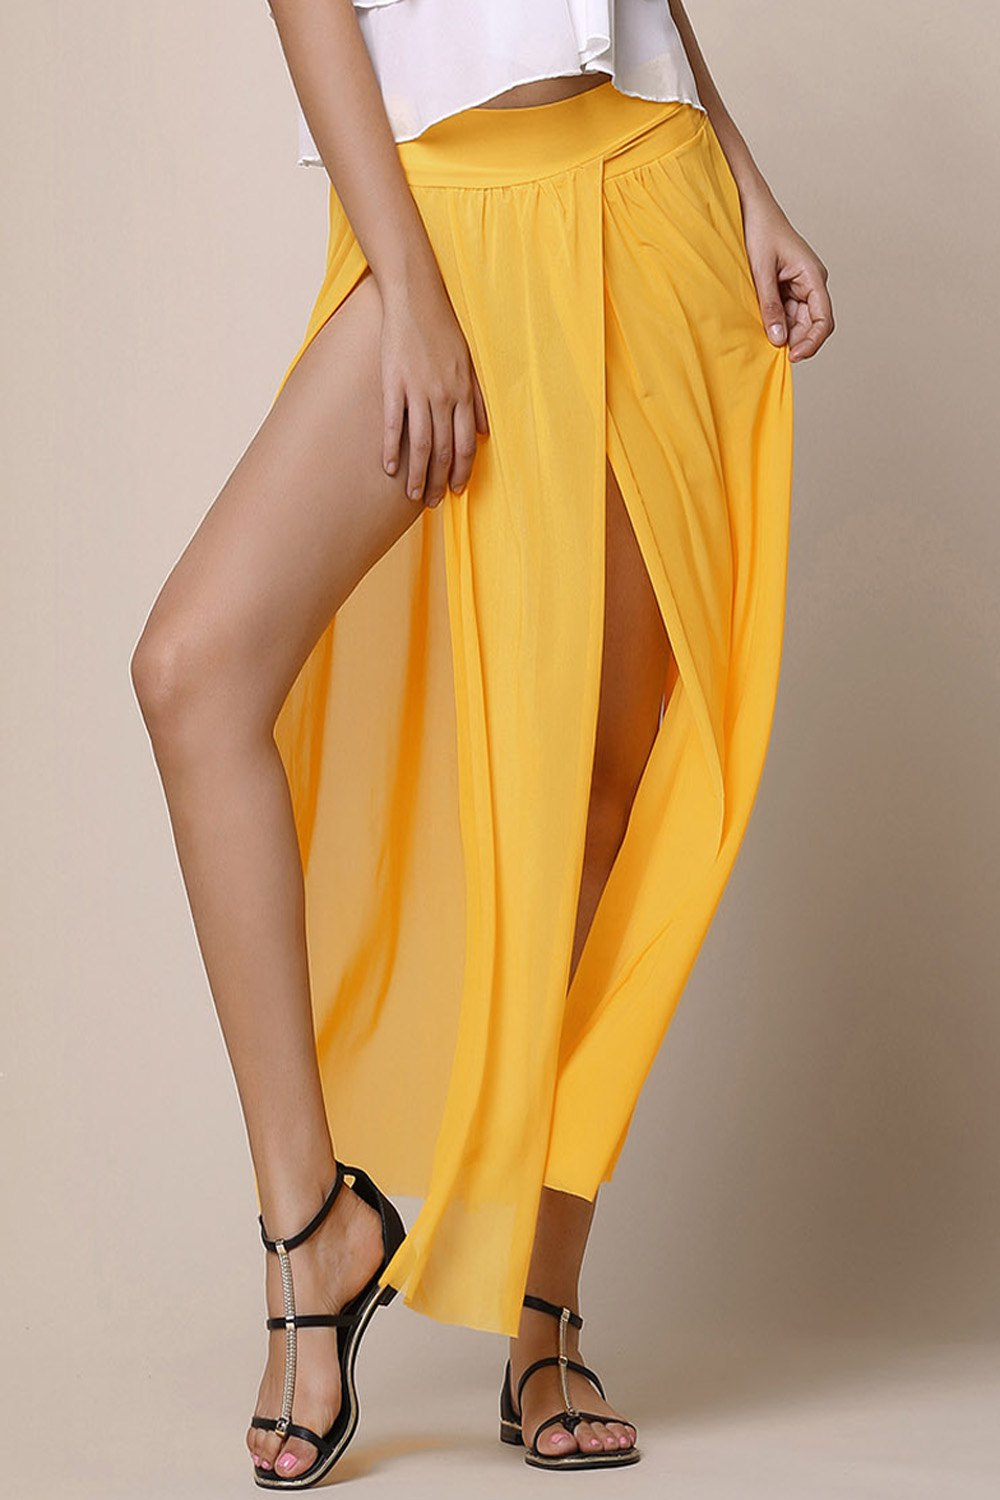 Shop Stylish Low-Waisted Solid Color High Slit Skirt for Women